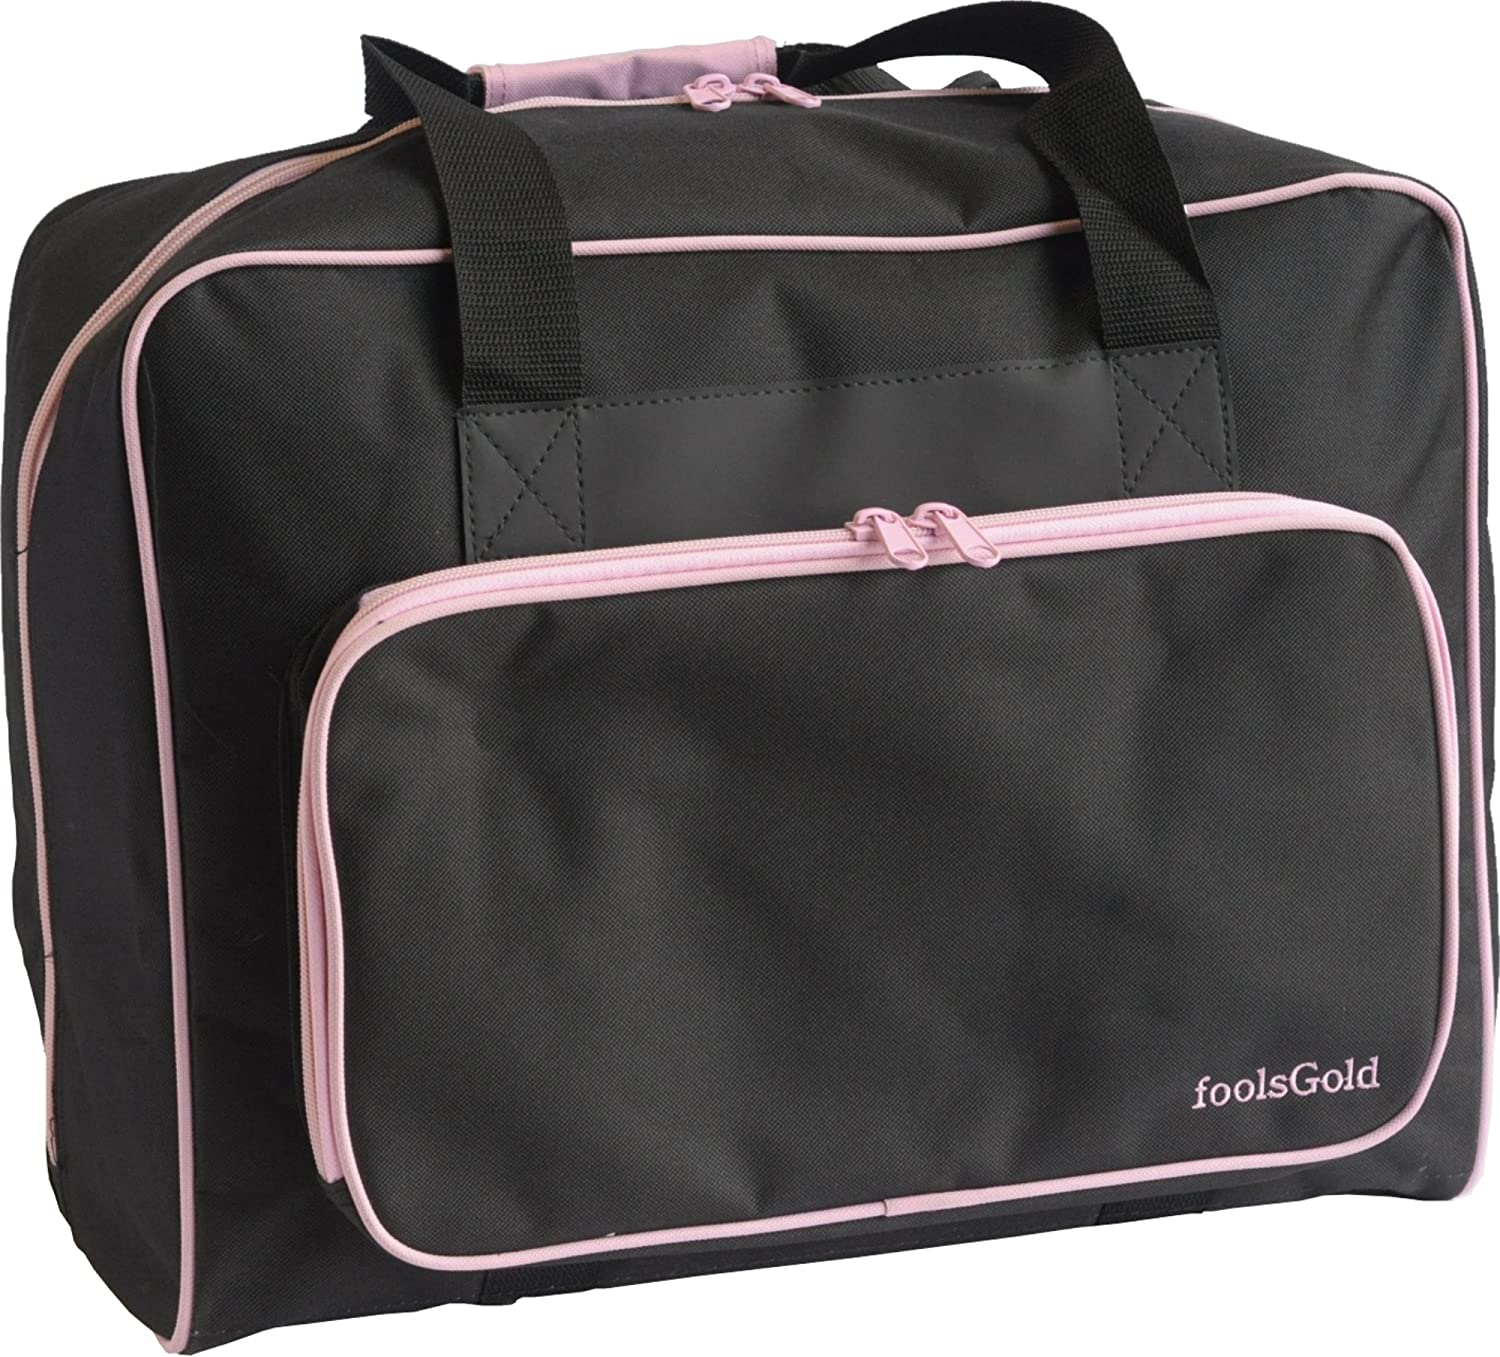 foolsGold Pro Thick Padded Sewing Machine Bag Carry Case - Black/Pink